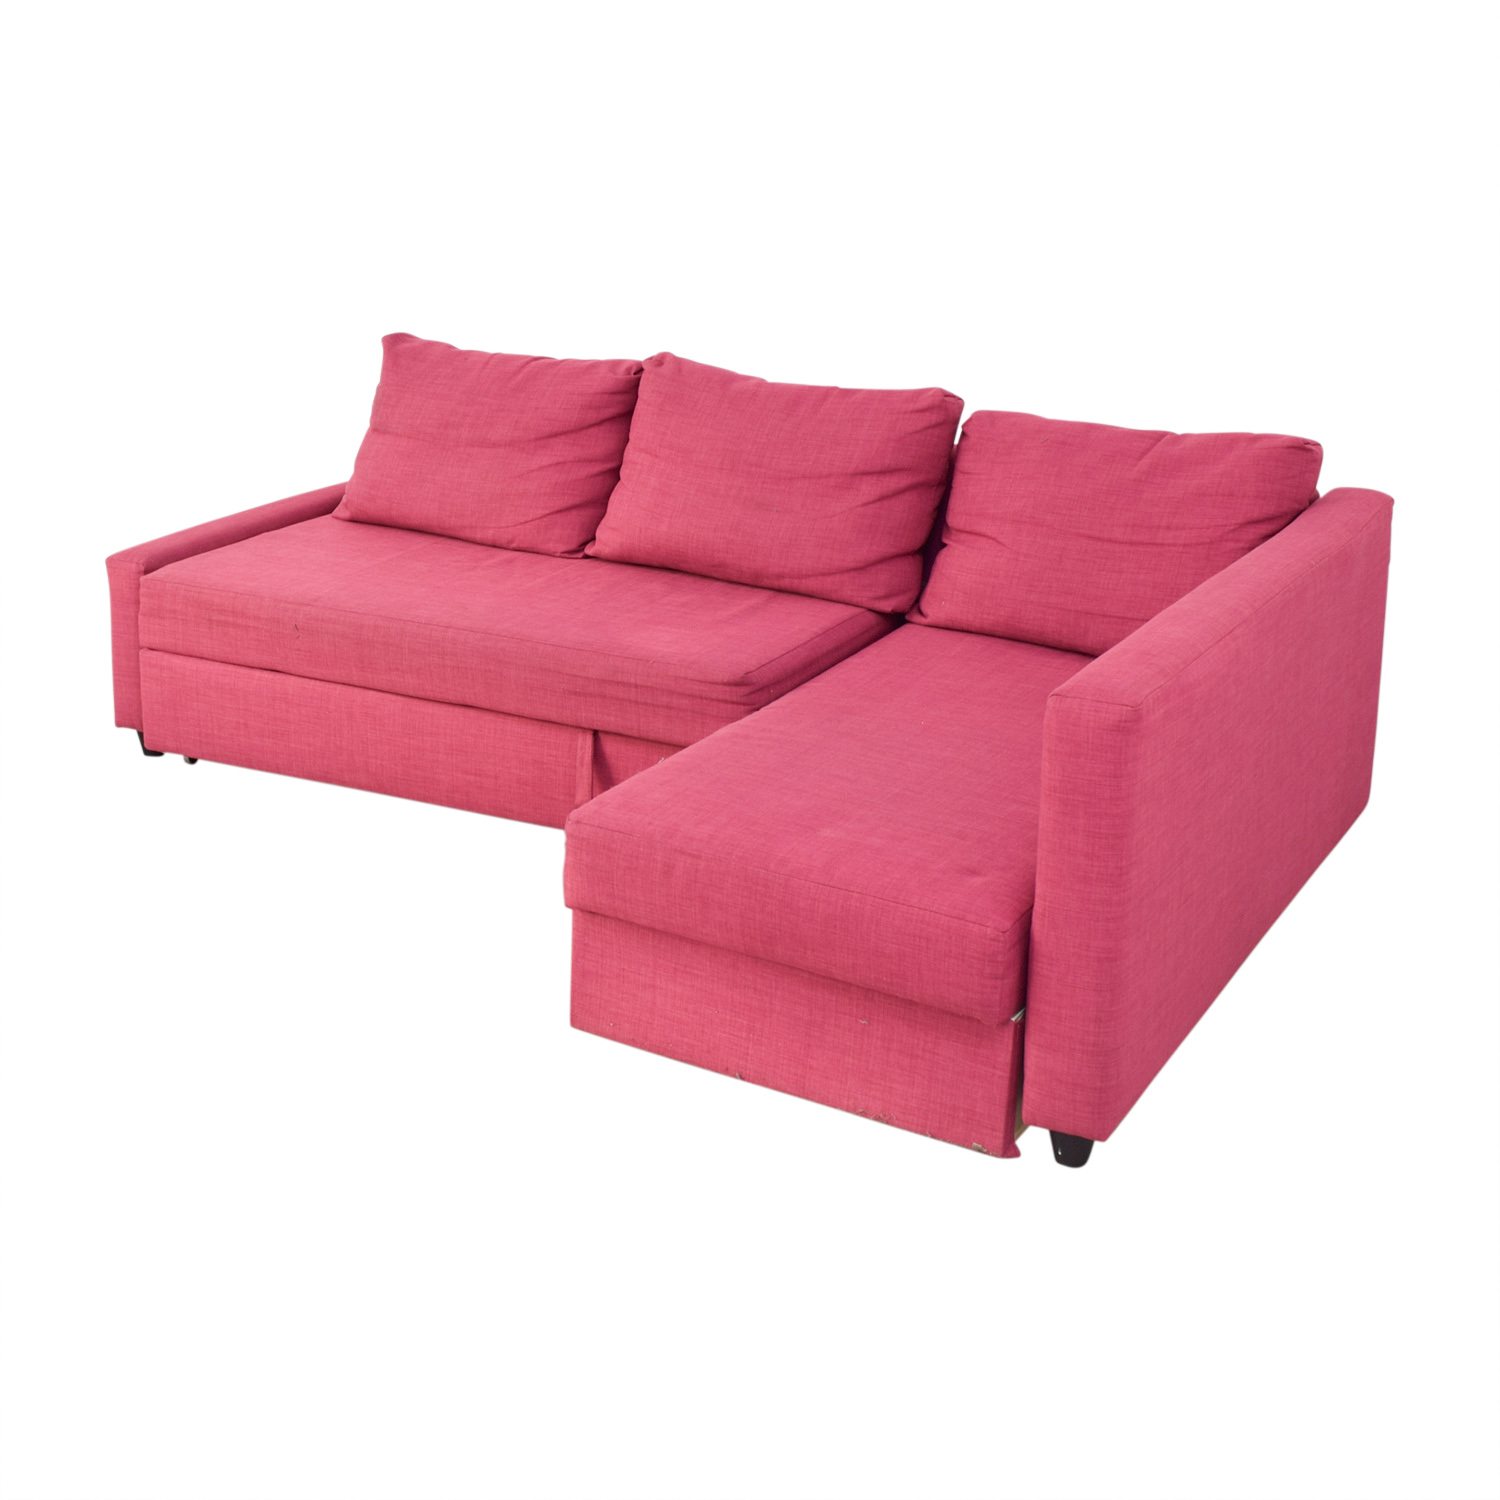 69 off ikea ikea pink kivik chaise sectional sofas for Chaise ikea